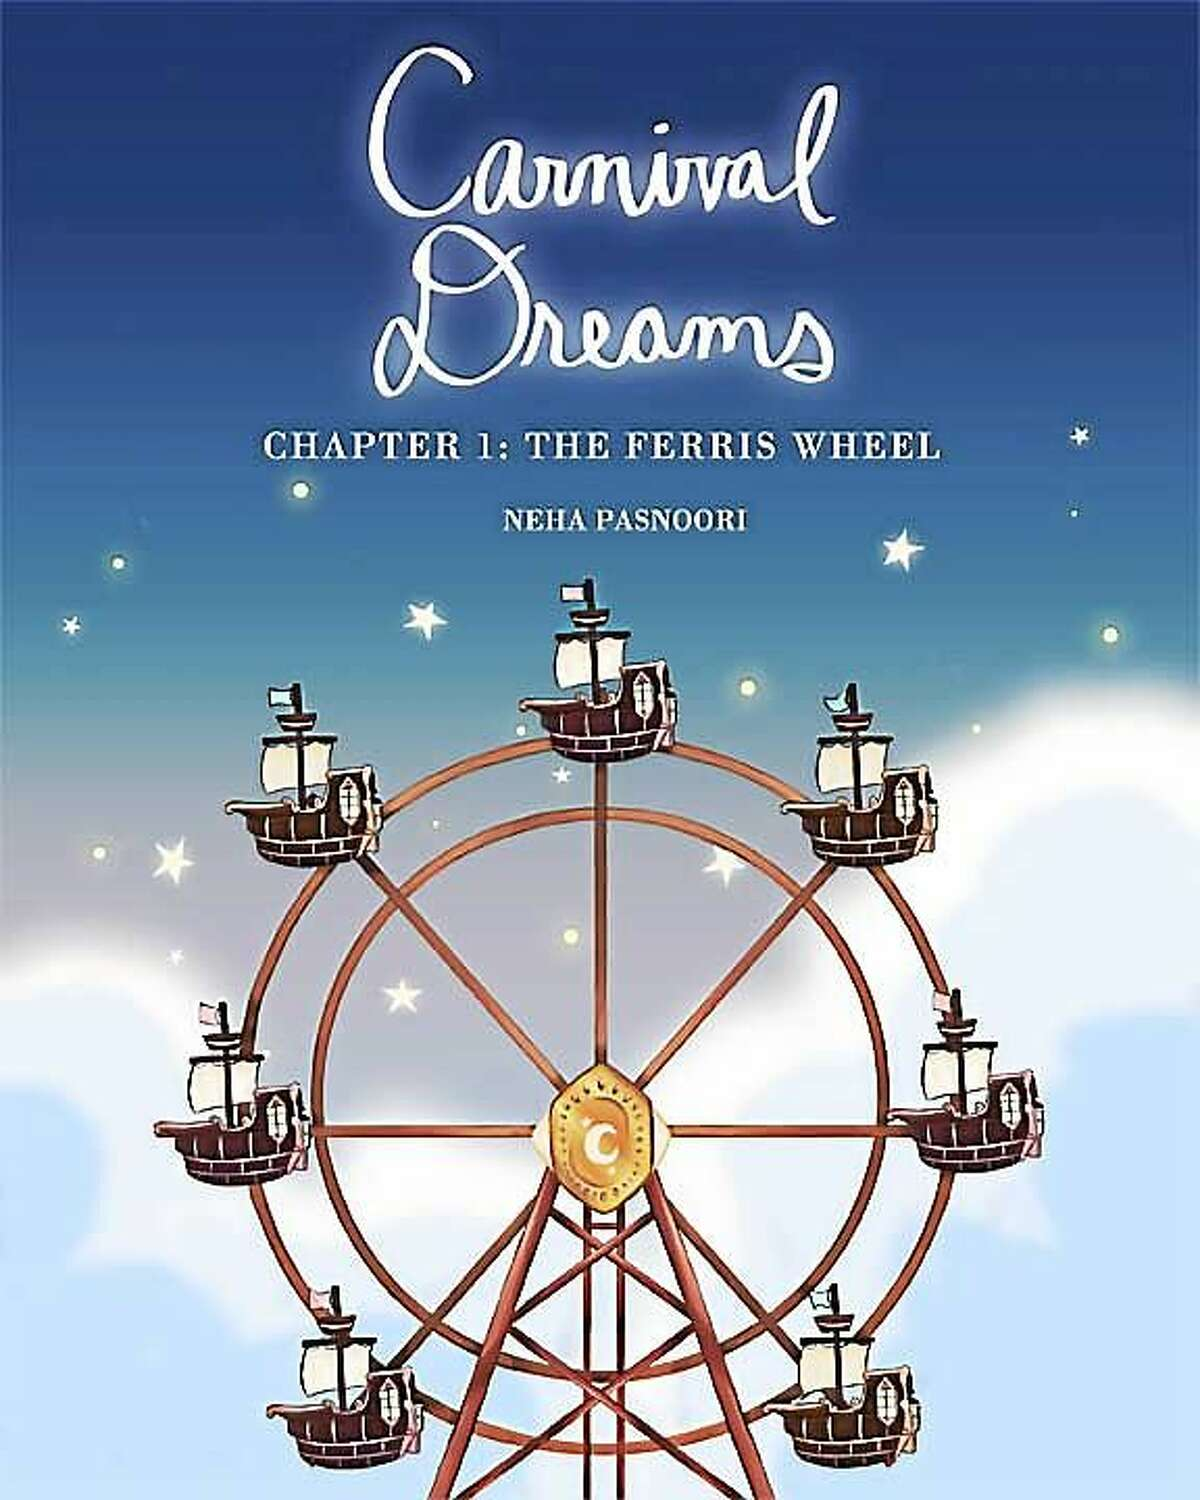 """Contributed image """"Carnival Dreams"""" by Neha Pasnoori."""